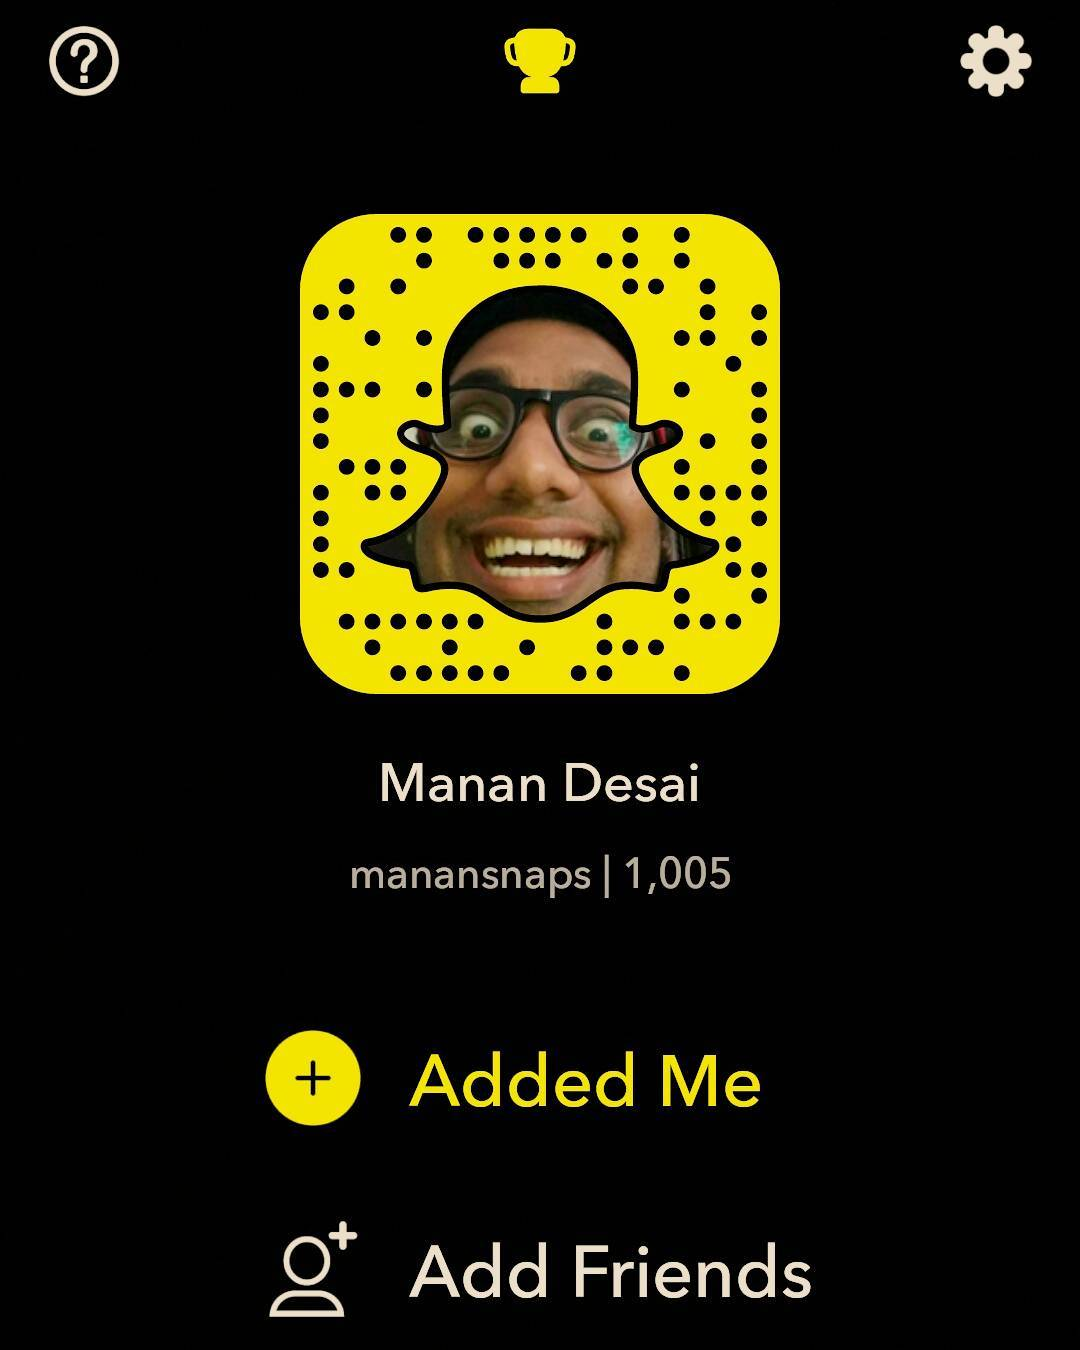 While I reupload 2 previous videos. Here is something you need to do. For some weird snap stories.. Add me. #snapchat #manansnaps